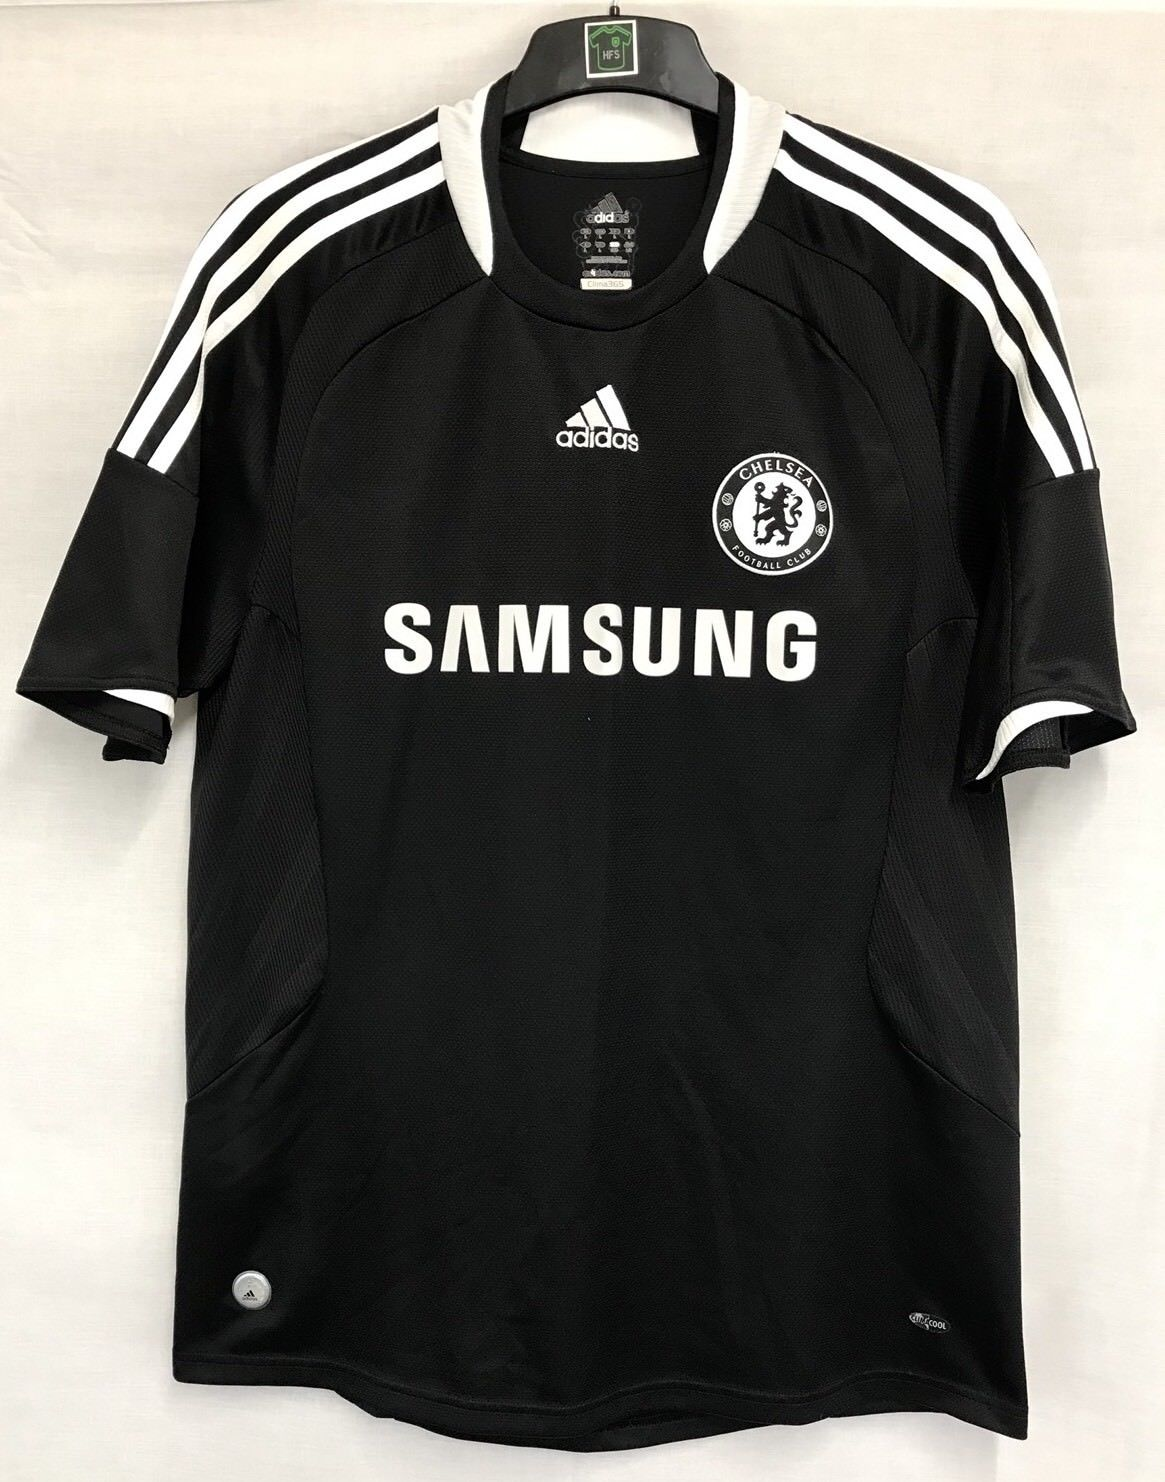 the best attitude d2c0f 39d77 Chelsea Deco 20 Football Shirt 2008/09 Adults Large Adidas